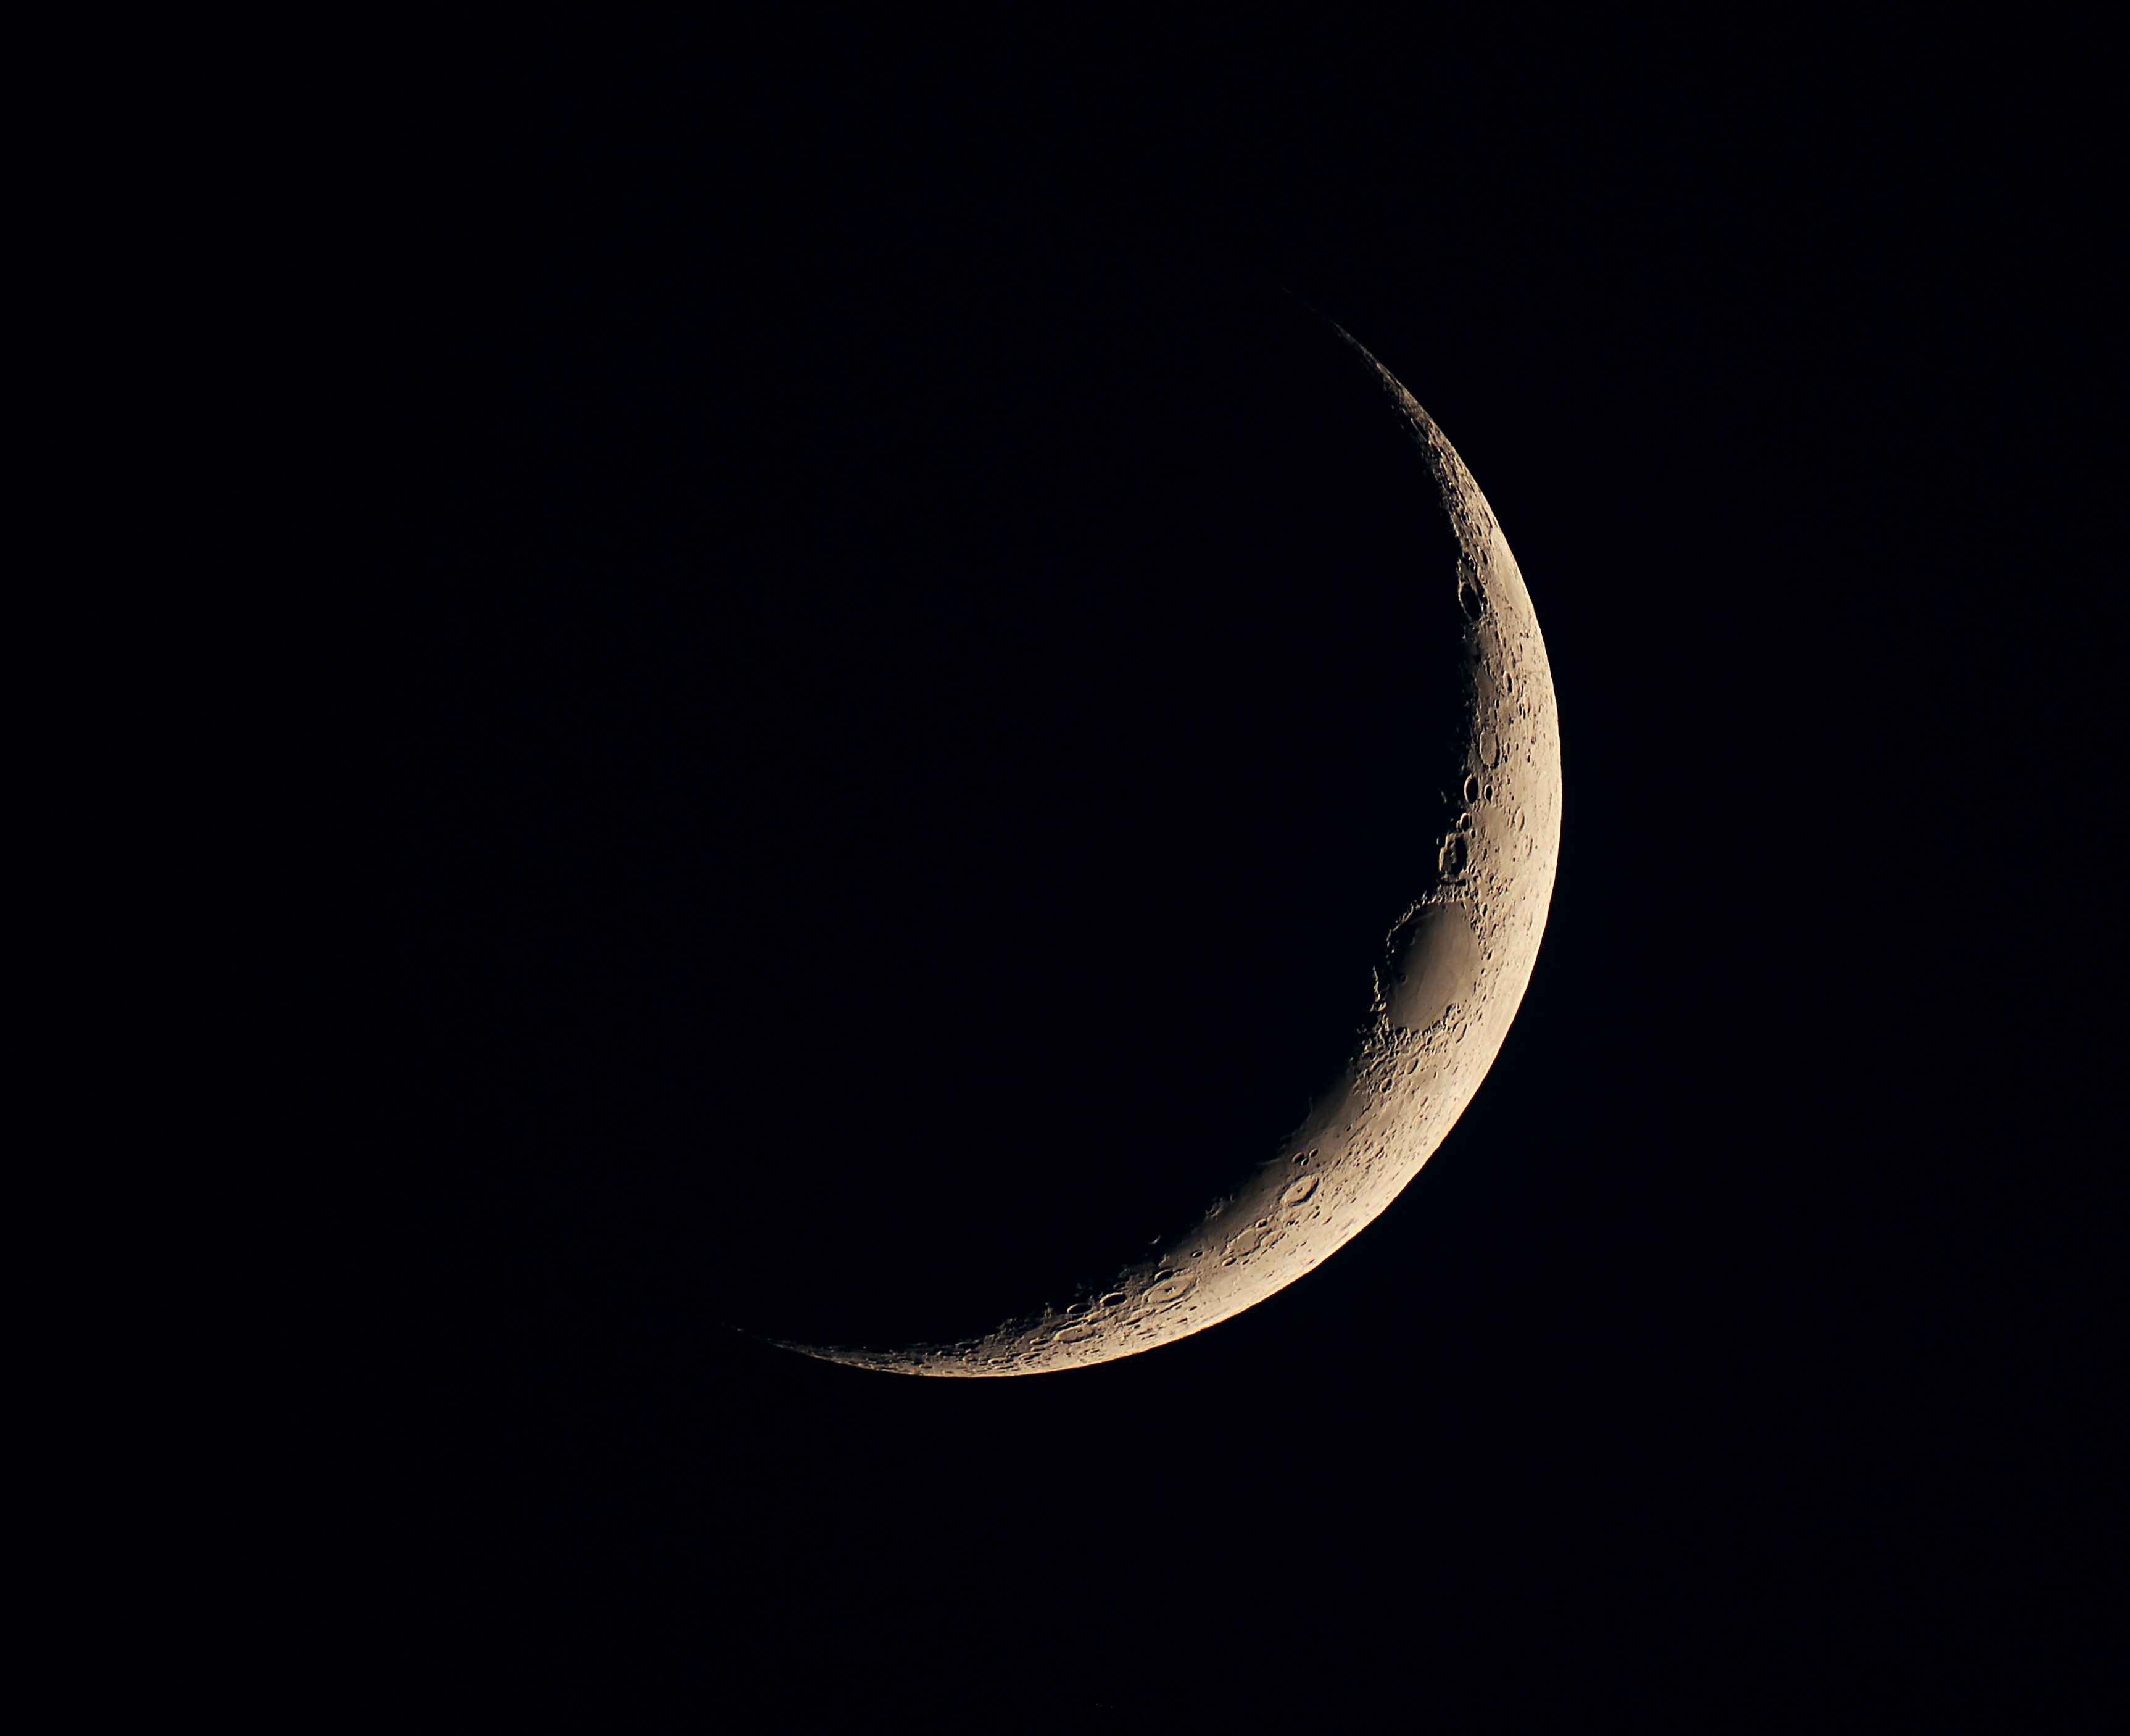 Very thin crescent moon in black sky